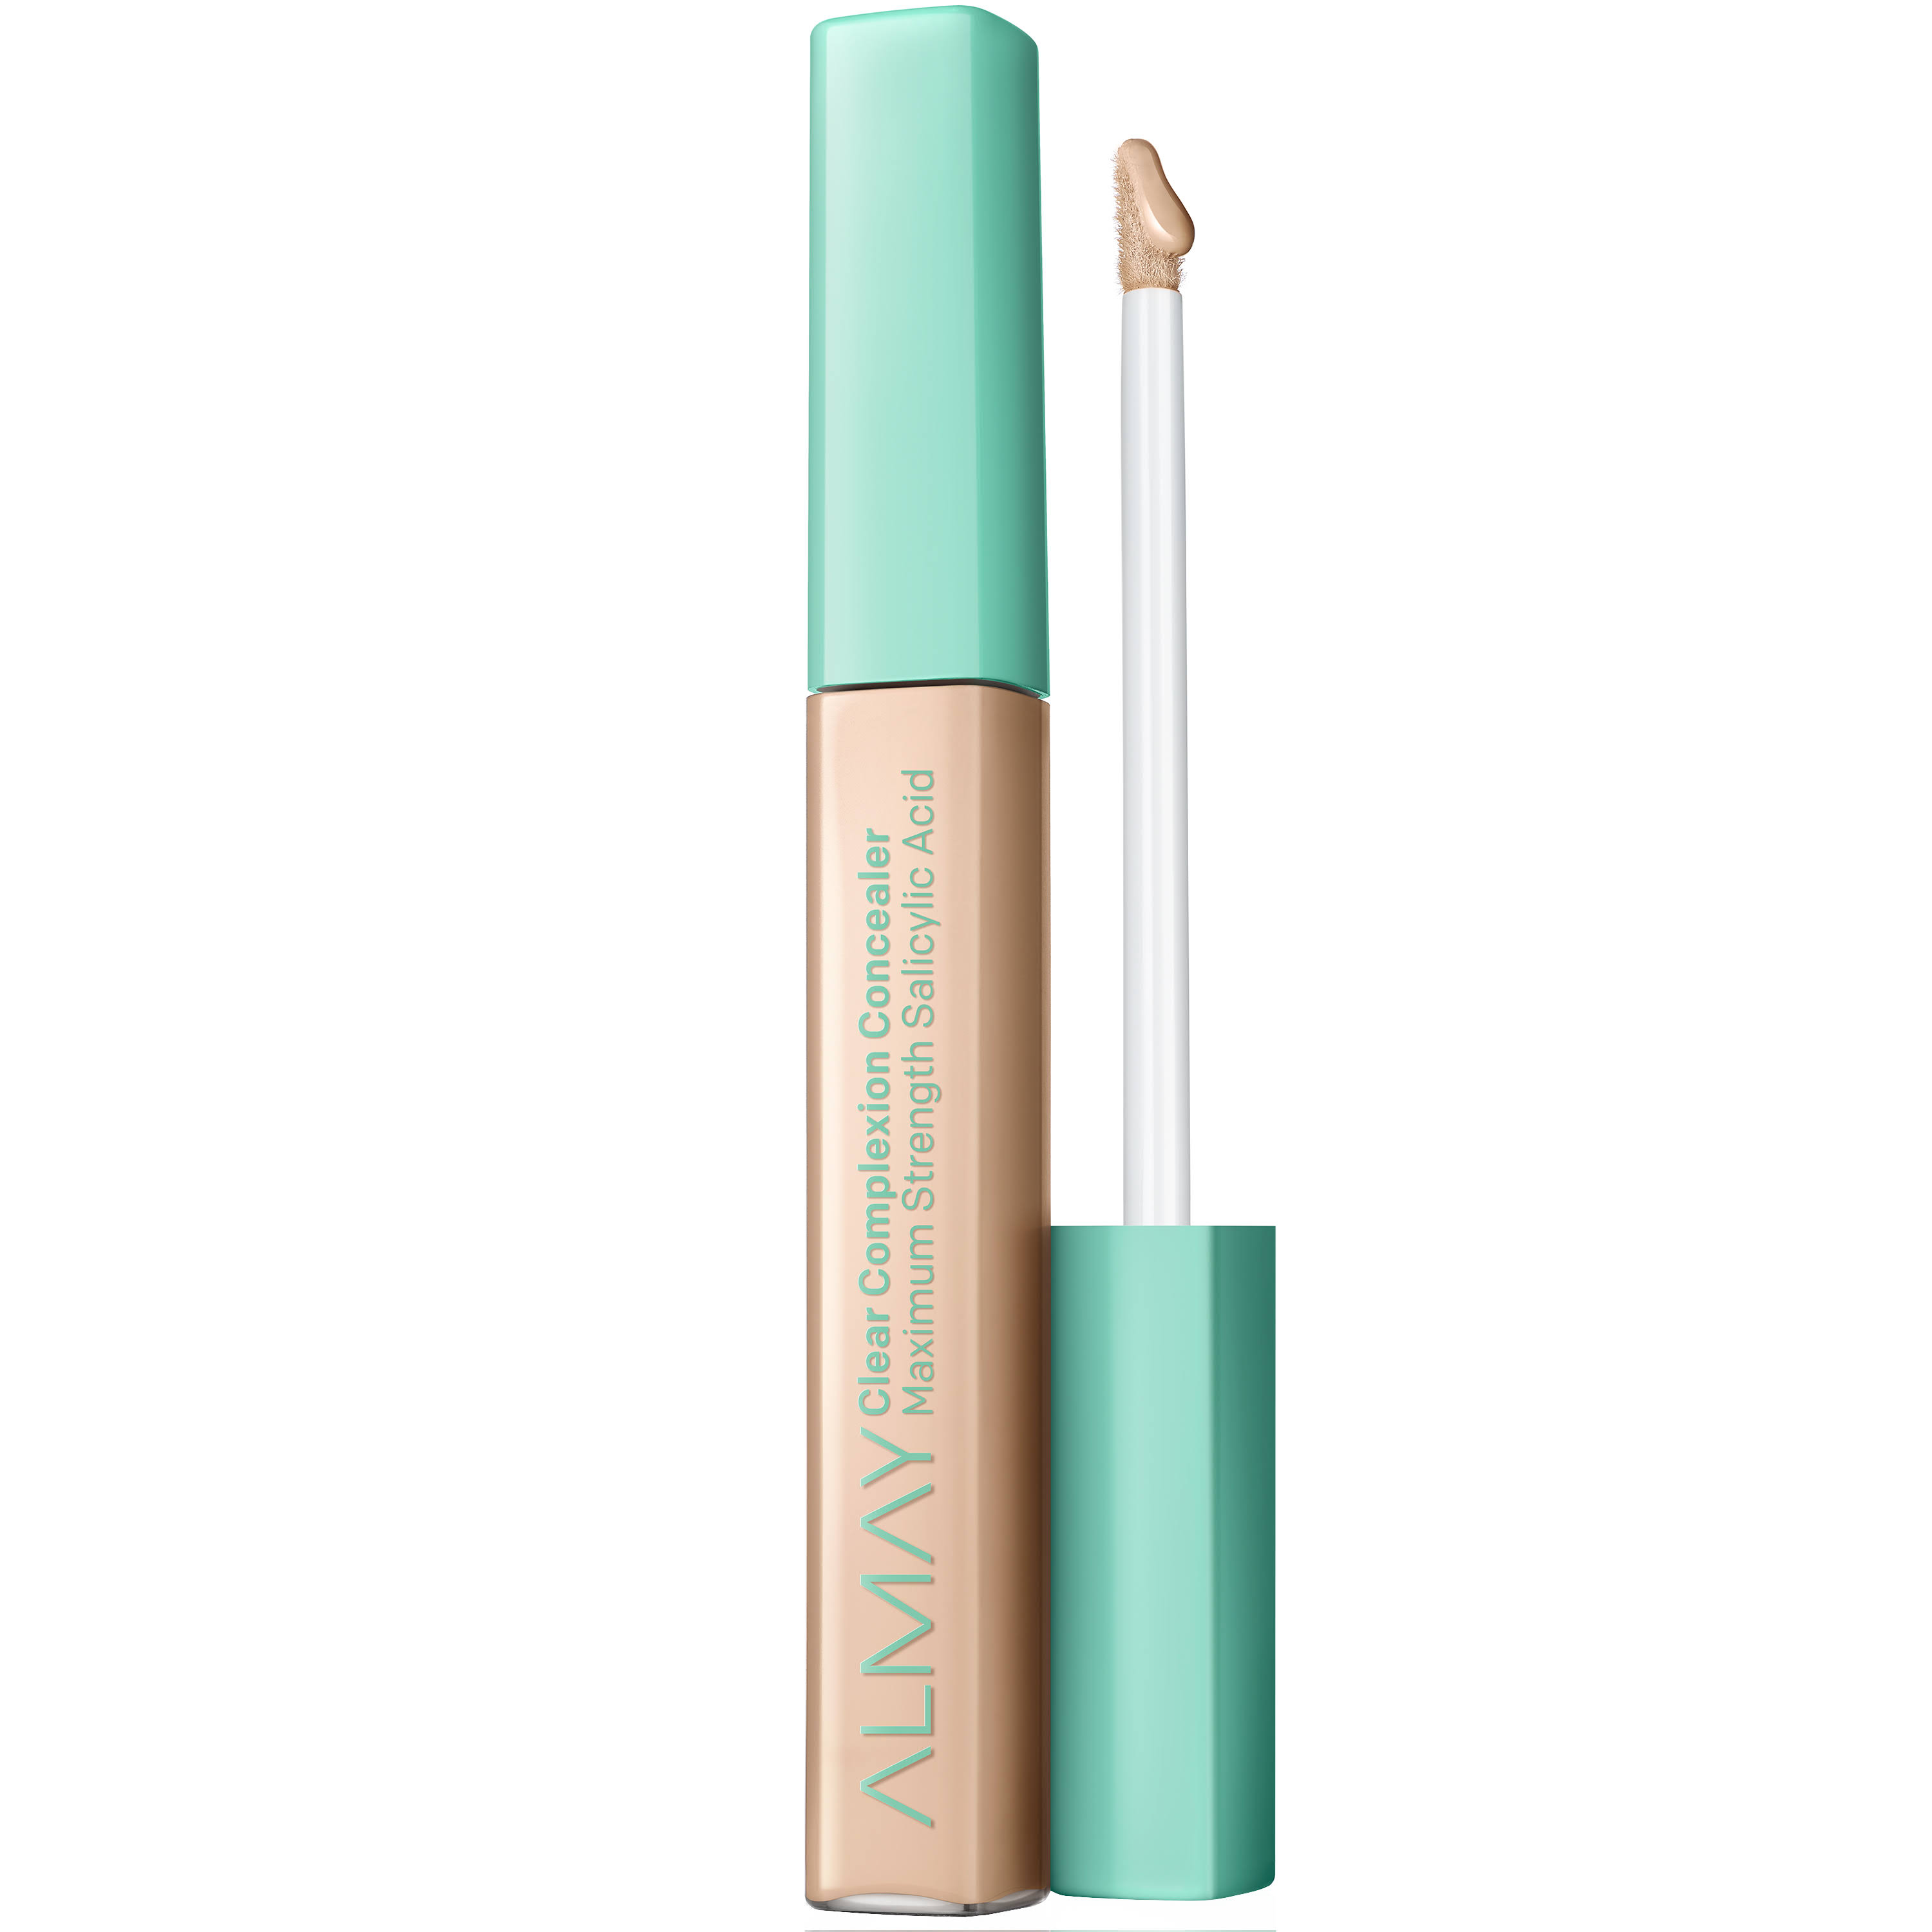 Almay Clear Complexion Oil Free Concealer - 100 Light